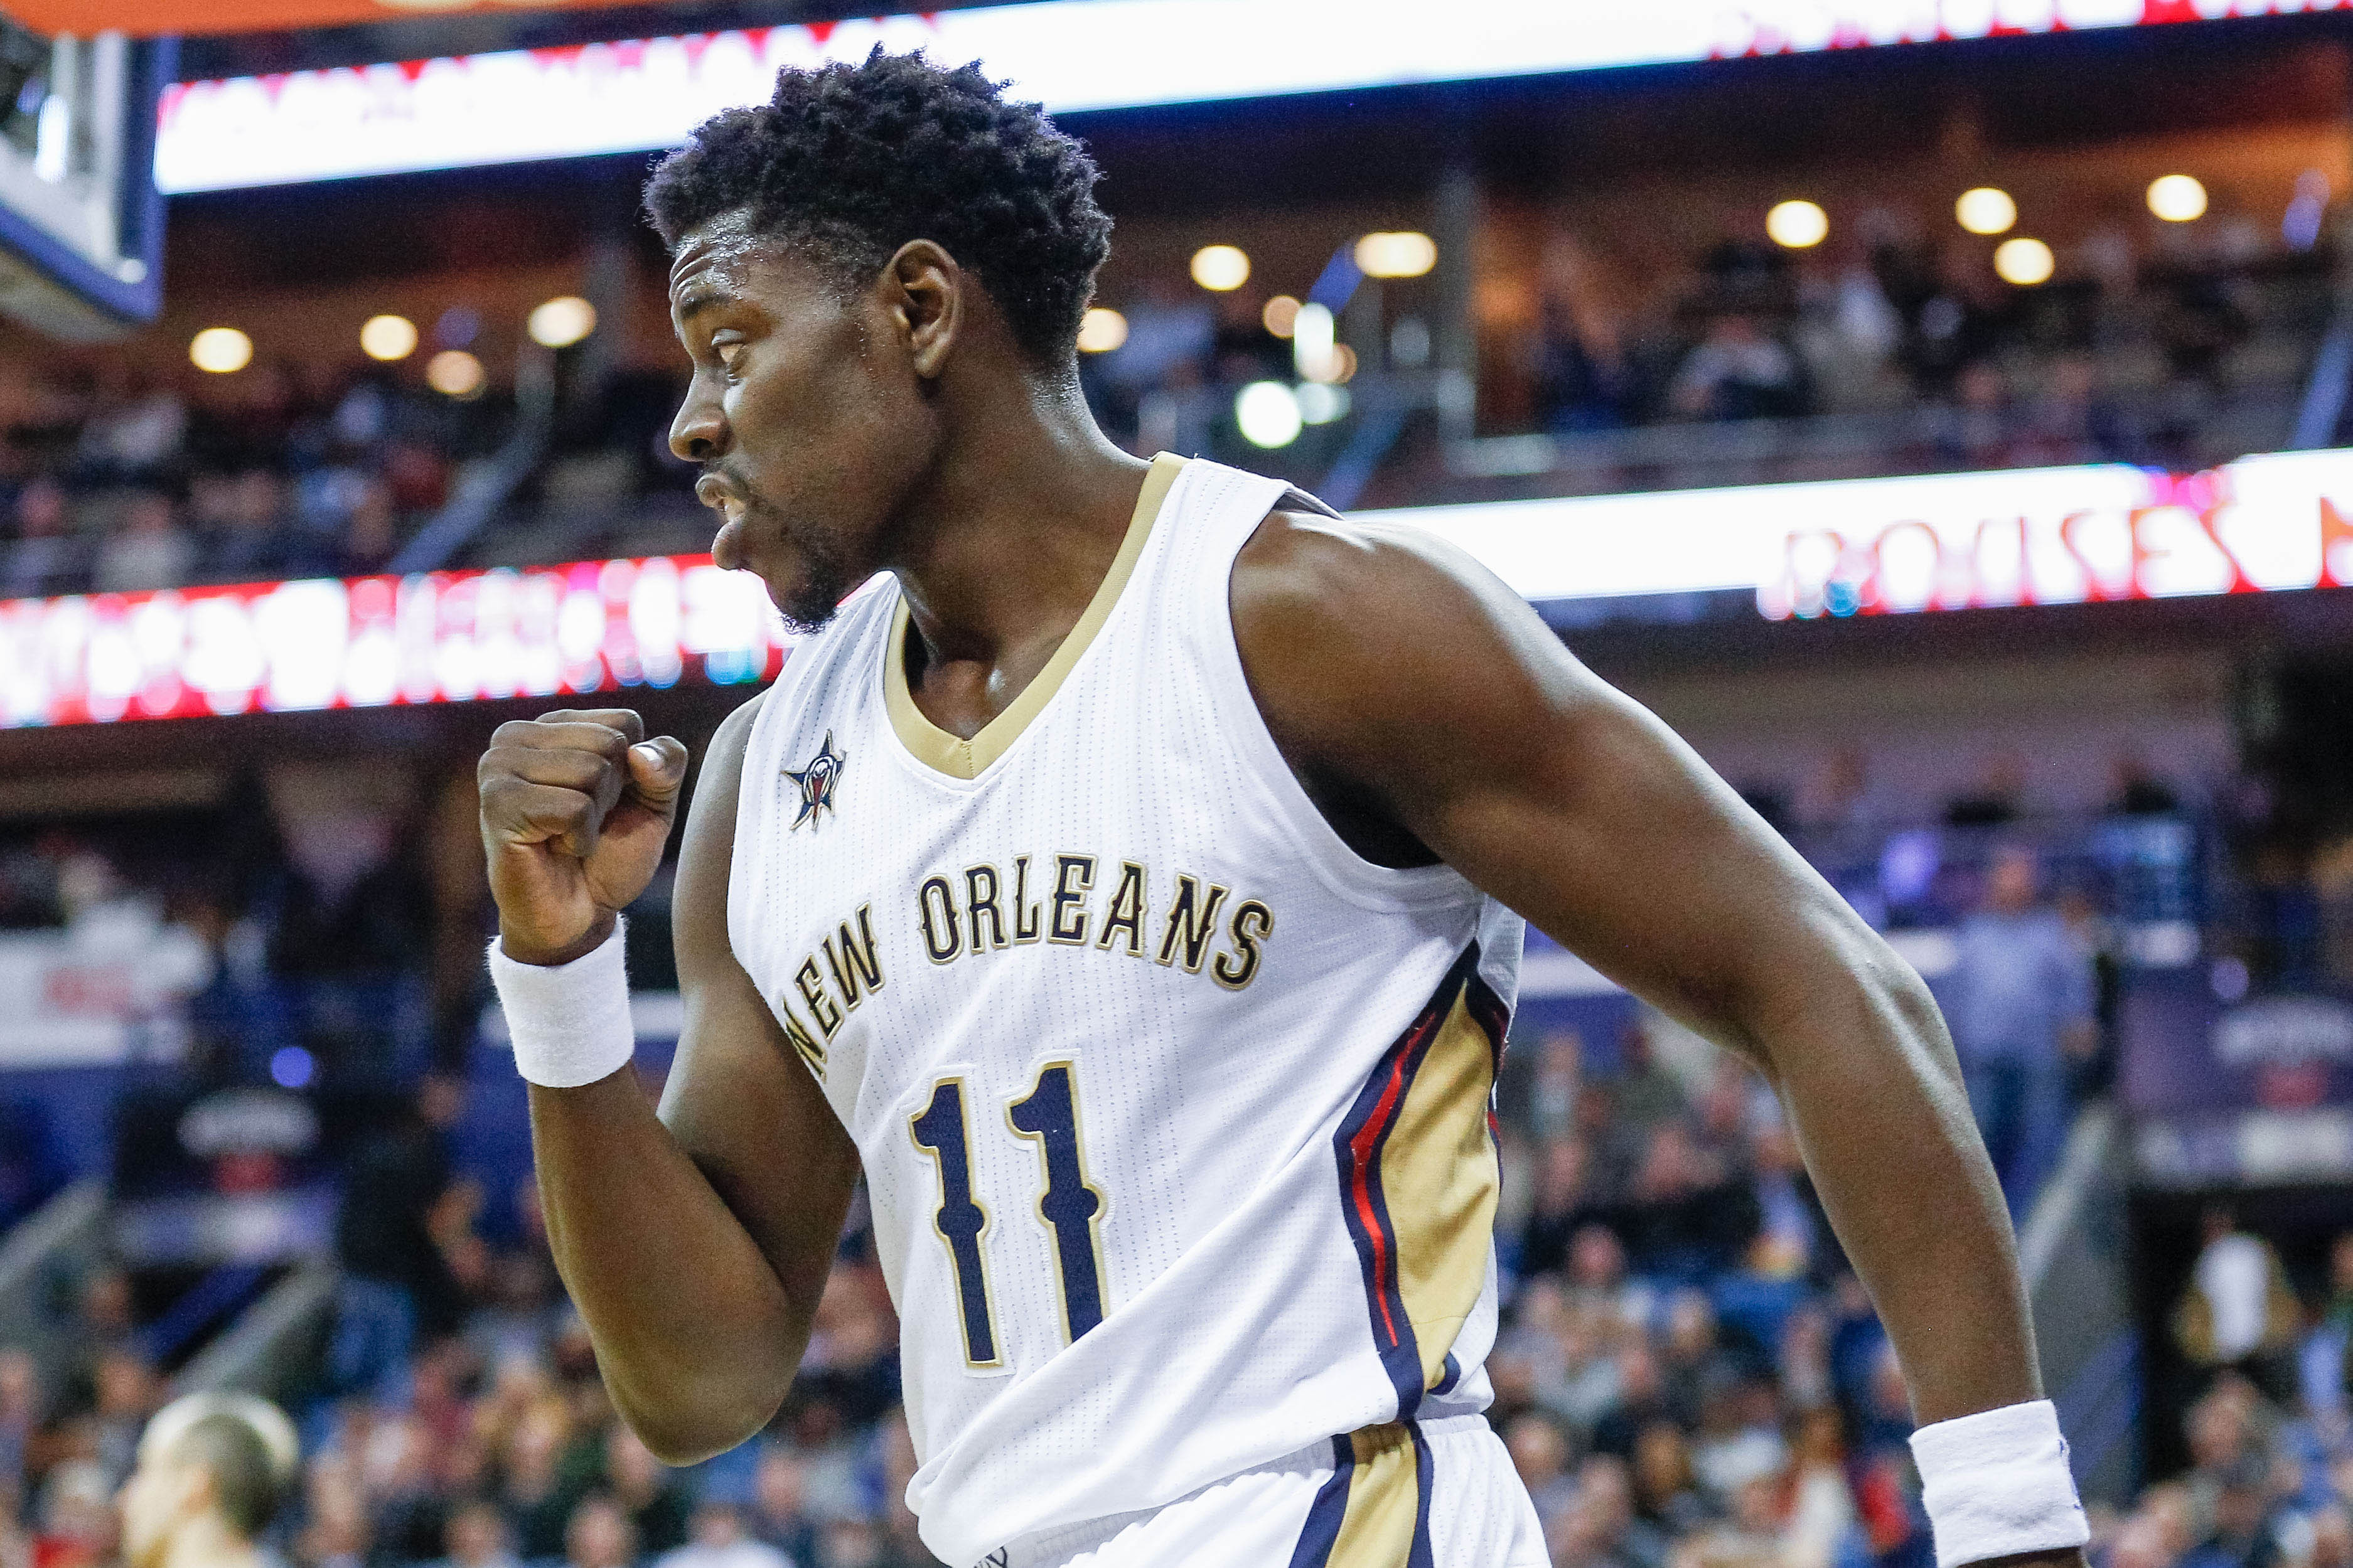 Jan 27, 2017; New Orleans, LA, USA; New Orleans Pelicans guard Jrue Holiday (11) reacts after scoring against the San Antonio Spurs during the first quarter of a game at the Smoothie King Center. Mandatory Credit: Derick E. Hingle-USA TODAY Sports